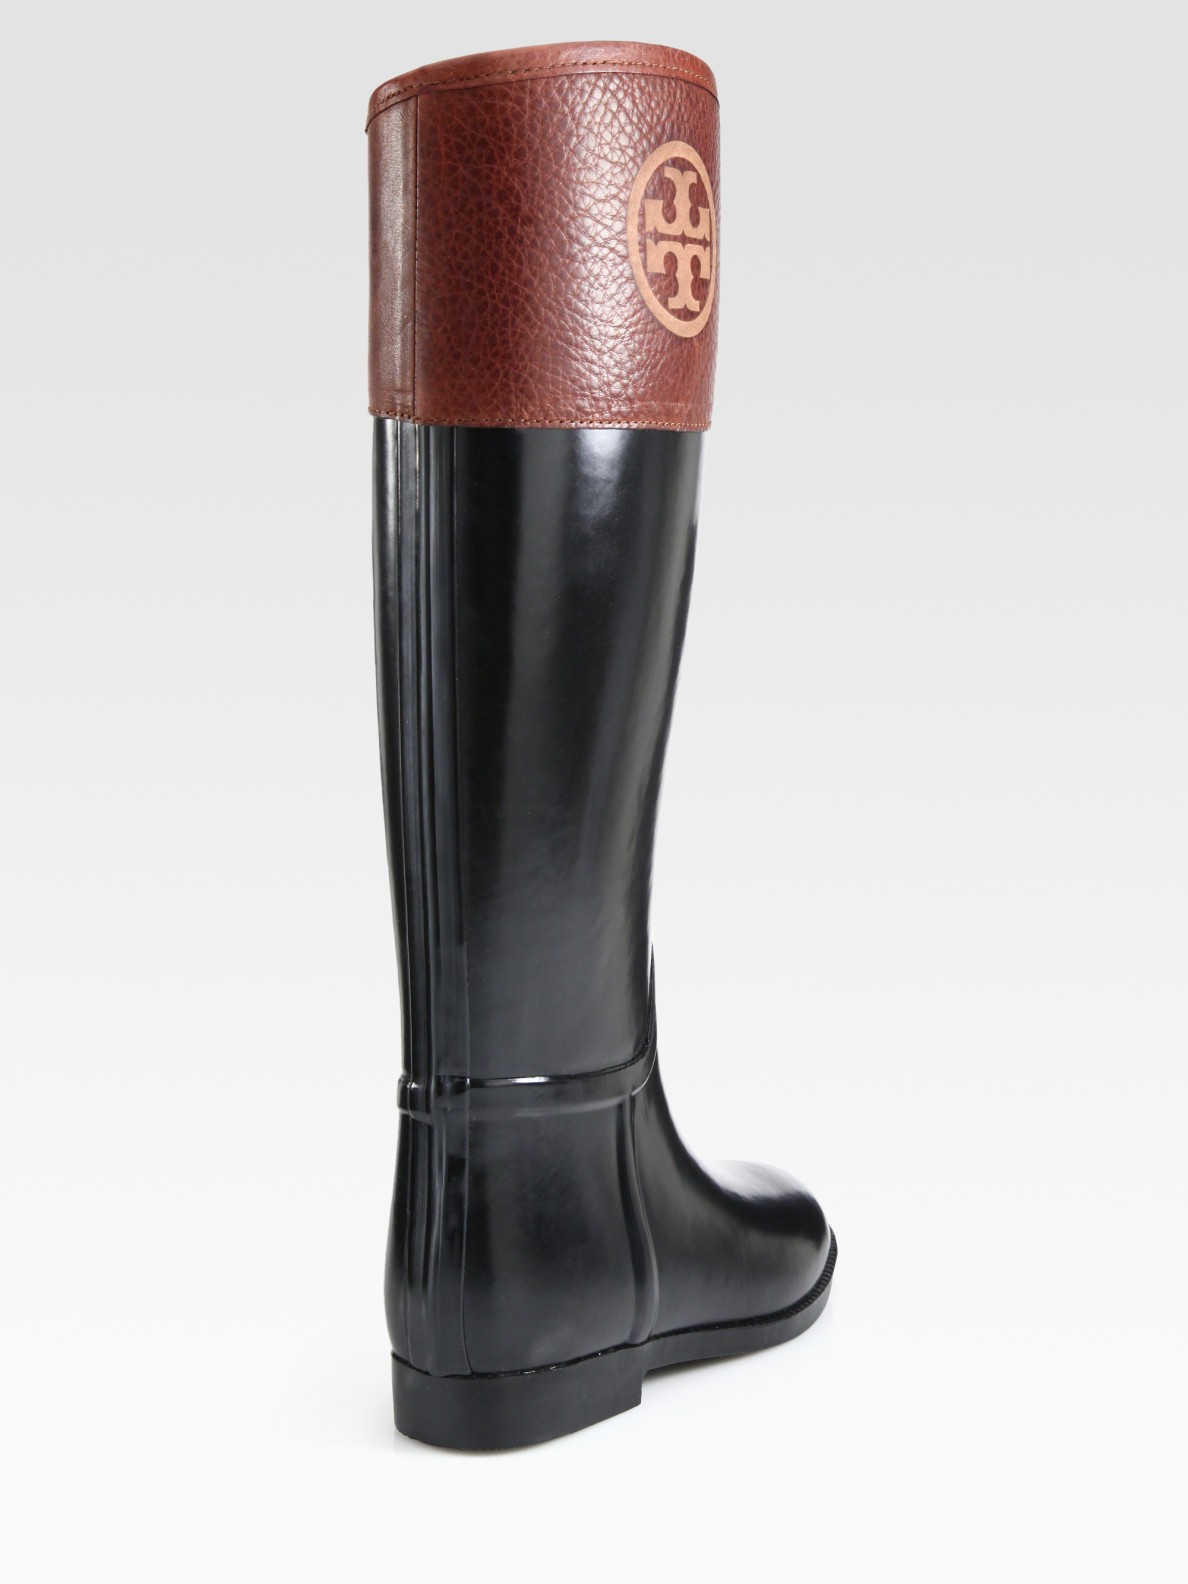 259bb3436fba4 Tory Burch Rain Boots Black And Brown - The Best Boots In The World